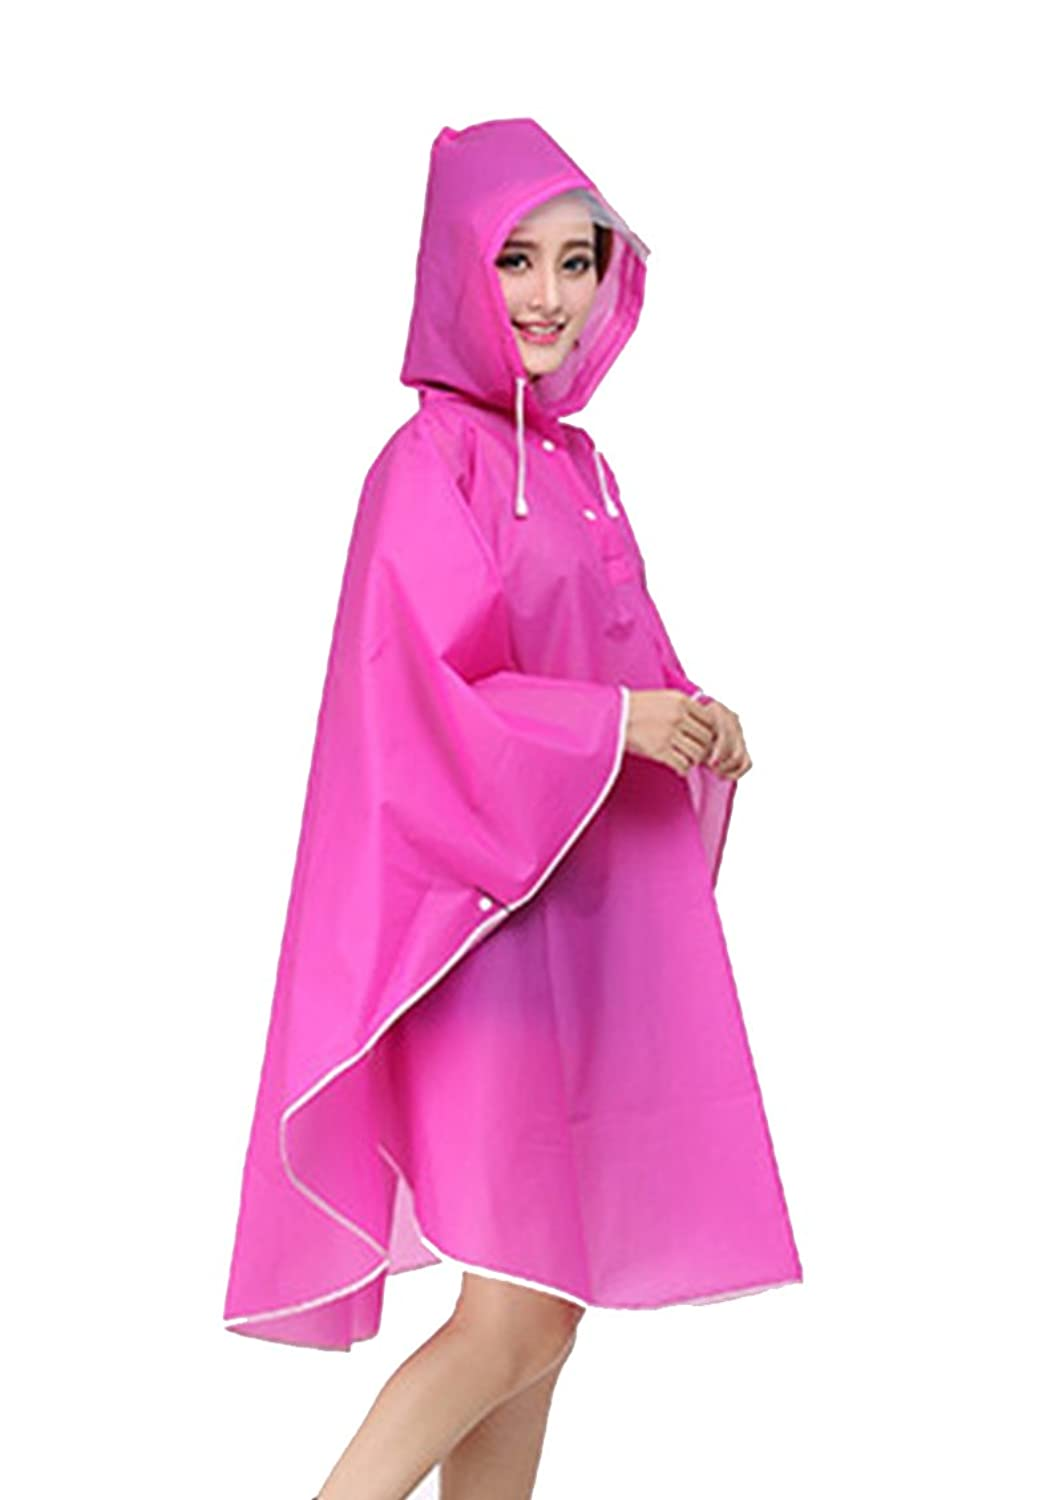 08c25ffe0fdd5 The long raincoat women raincoat men is one size fits all adults and  perfect for both men and women. The Rain coat ...